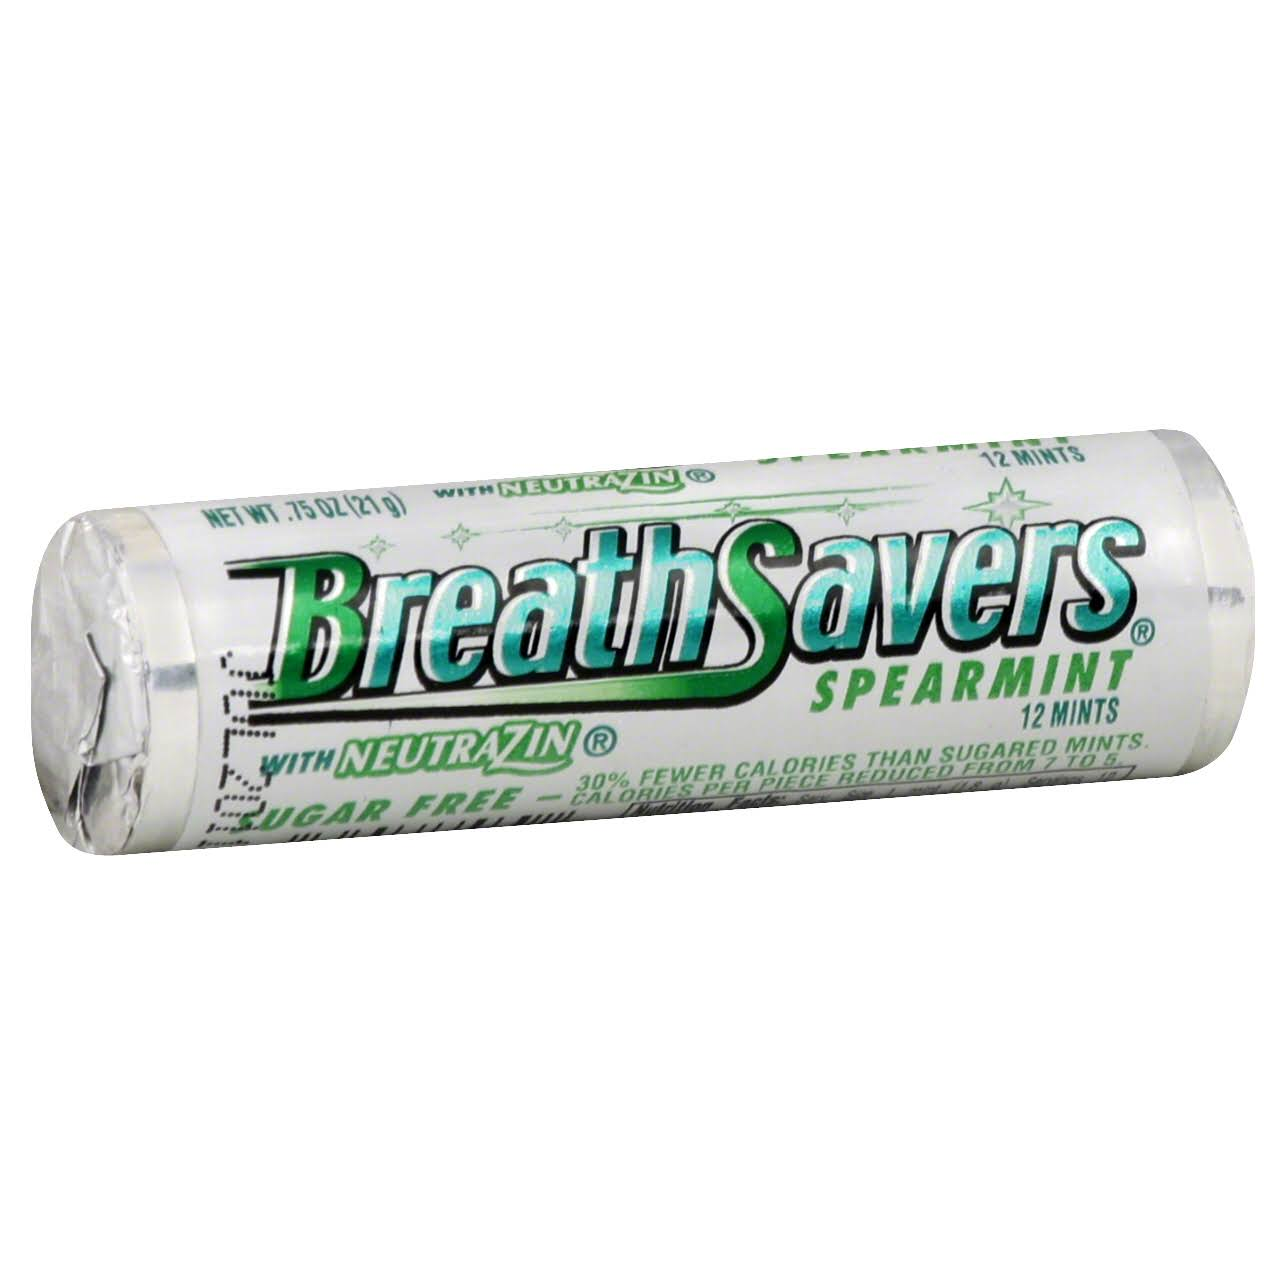 Breath Savers Mints - Spearmint, 0.75oz Rolls, Pack of 24